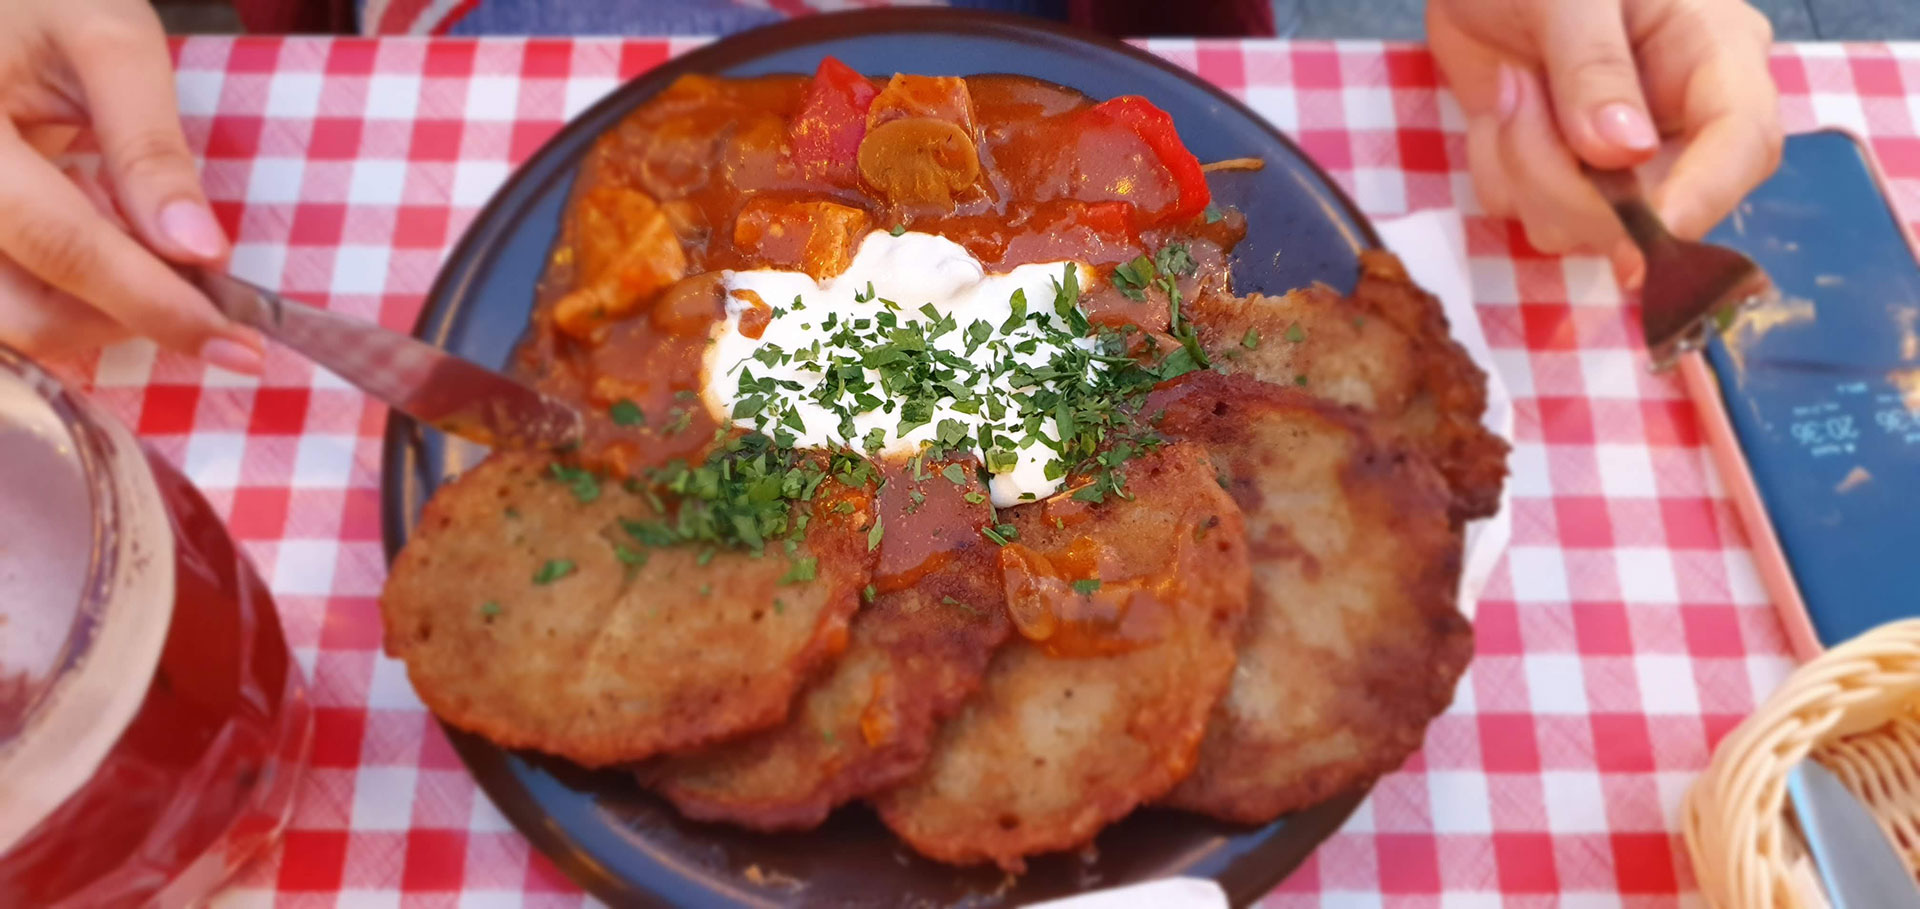 Placki ziemniaczne - Potato pancakes with goulash souce